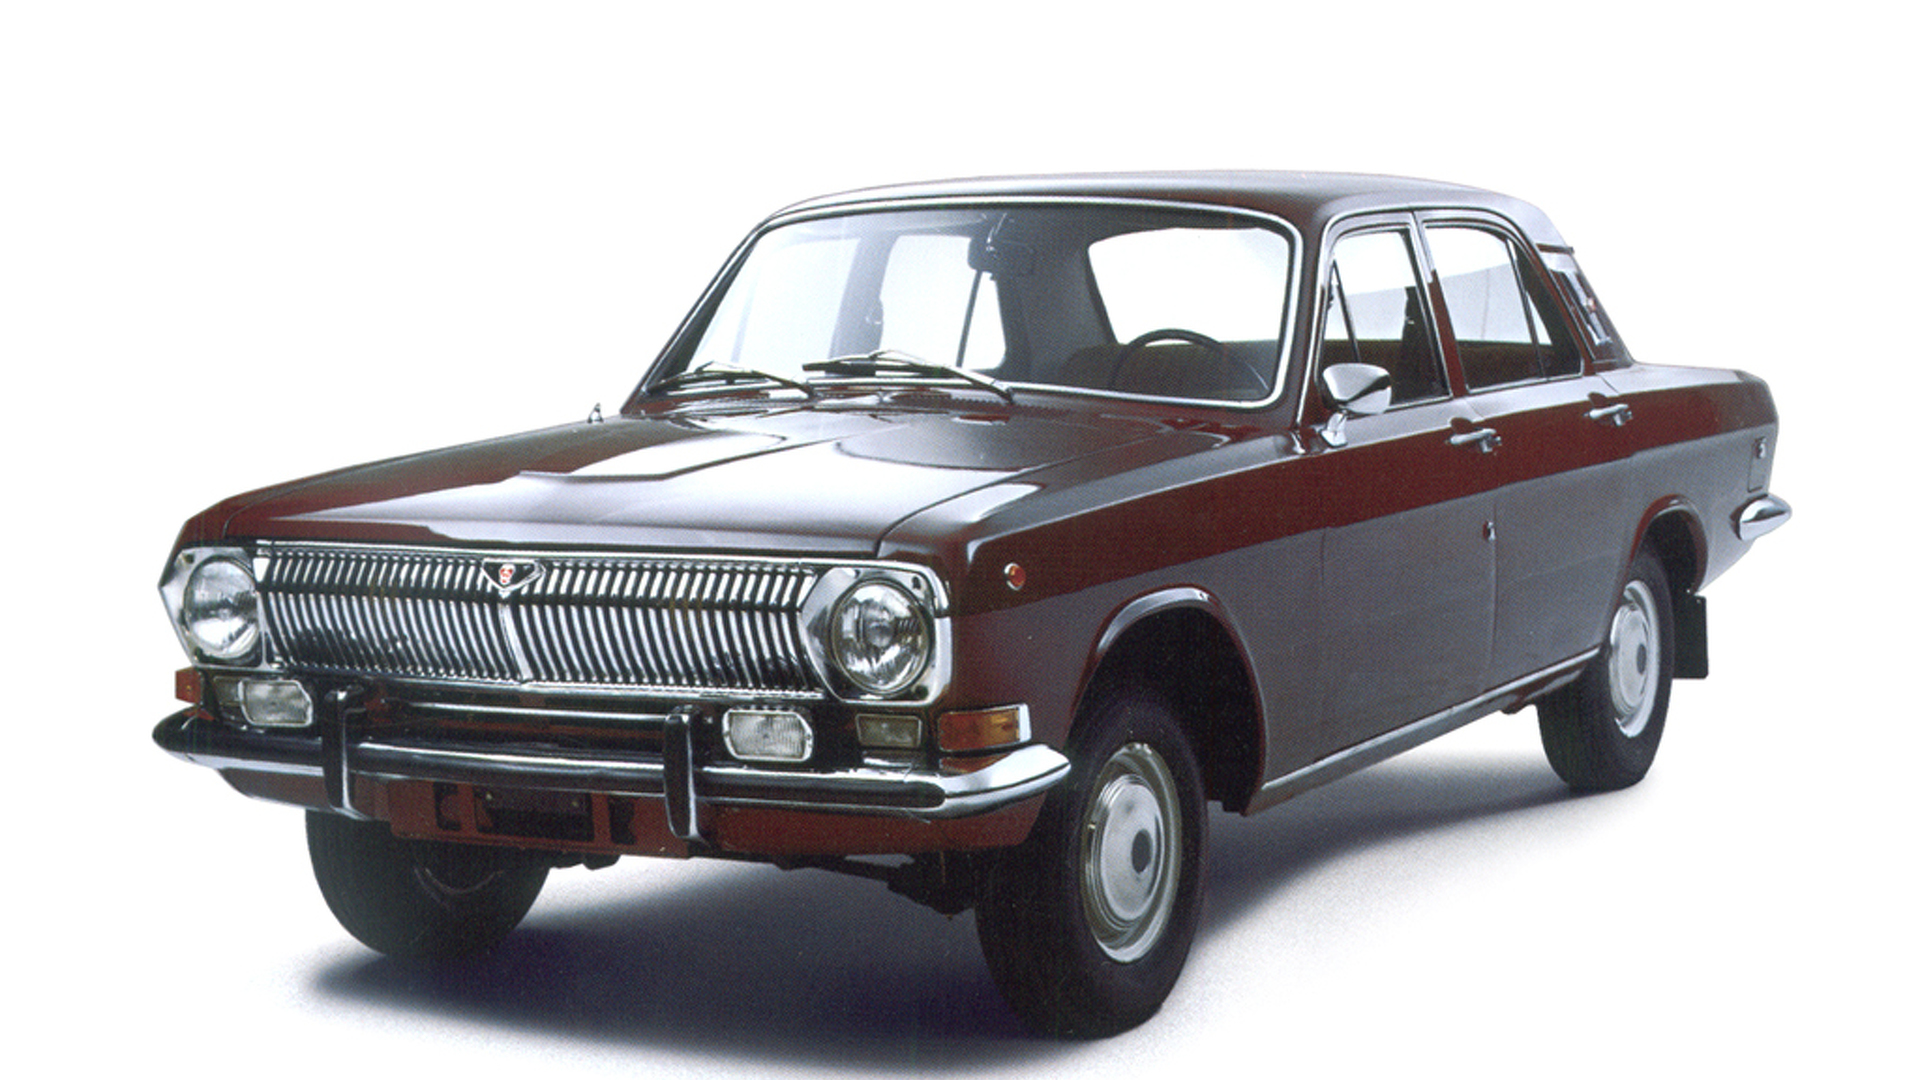 soviet cars were weird volga gaz 24. Black Bedroom Furniture Sets. Home Design Ideas